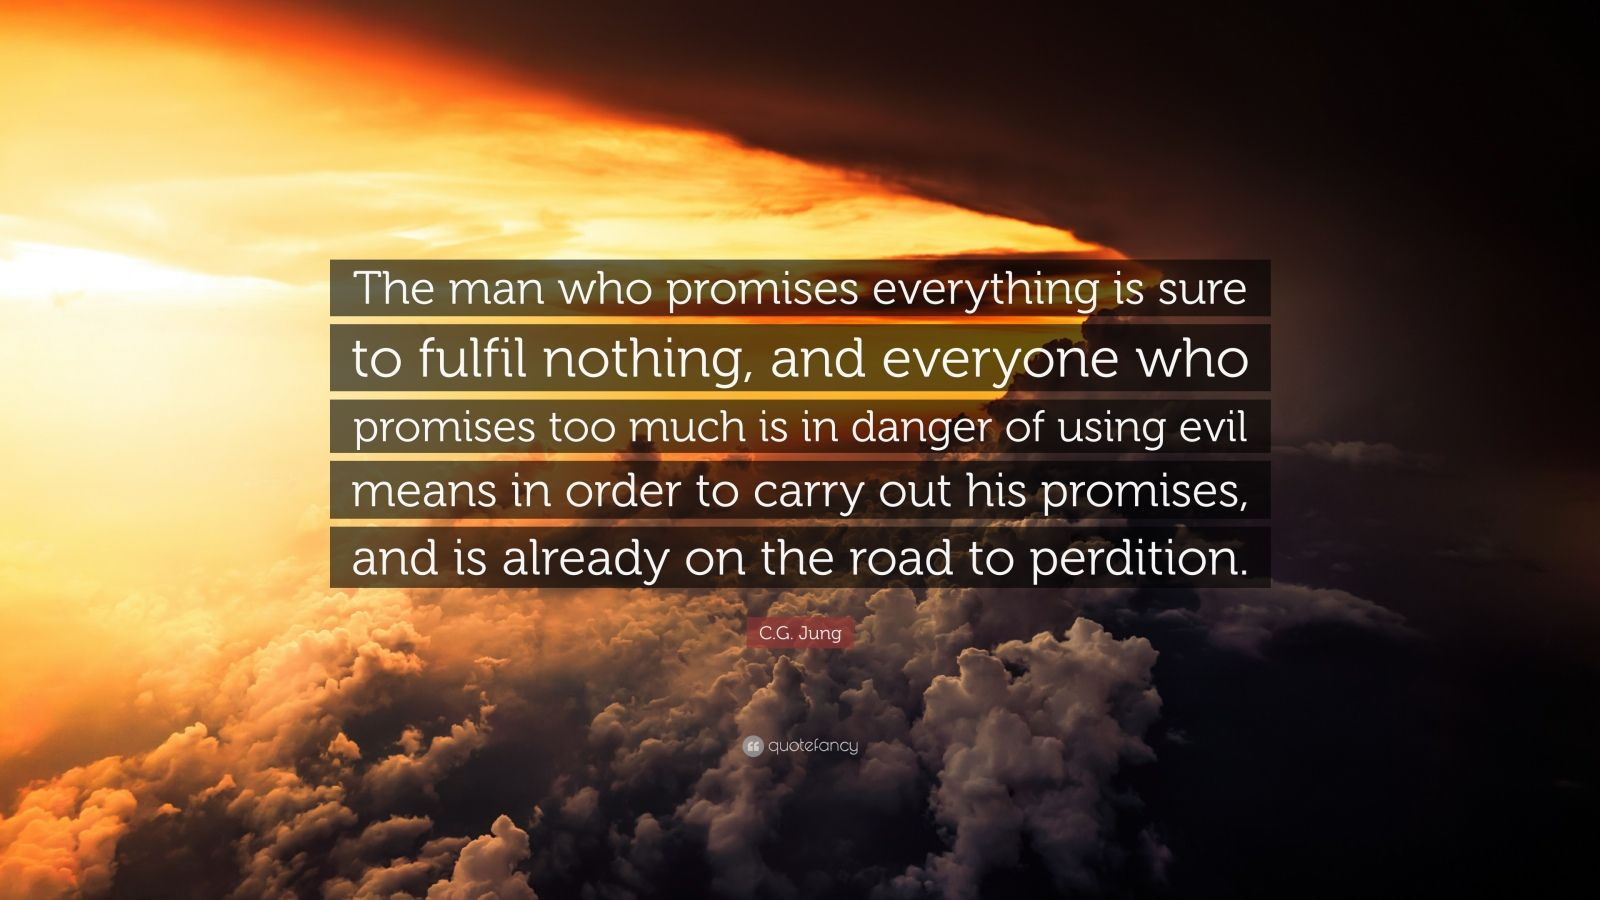 """C.G. Jung Quote: """"The man who promises everything is sure to fulfil nothing, and everyone who promises too much is in danger of using evil means in order to carry out his promises, and is already on the road to perdition."""""""